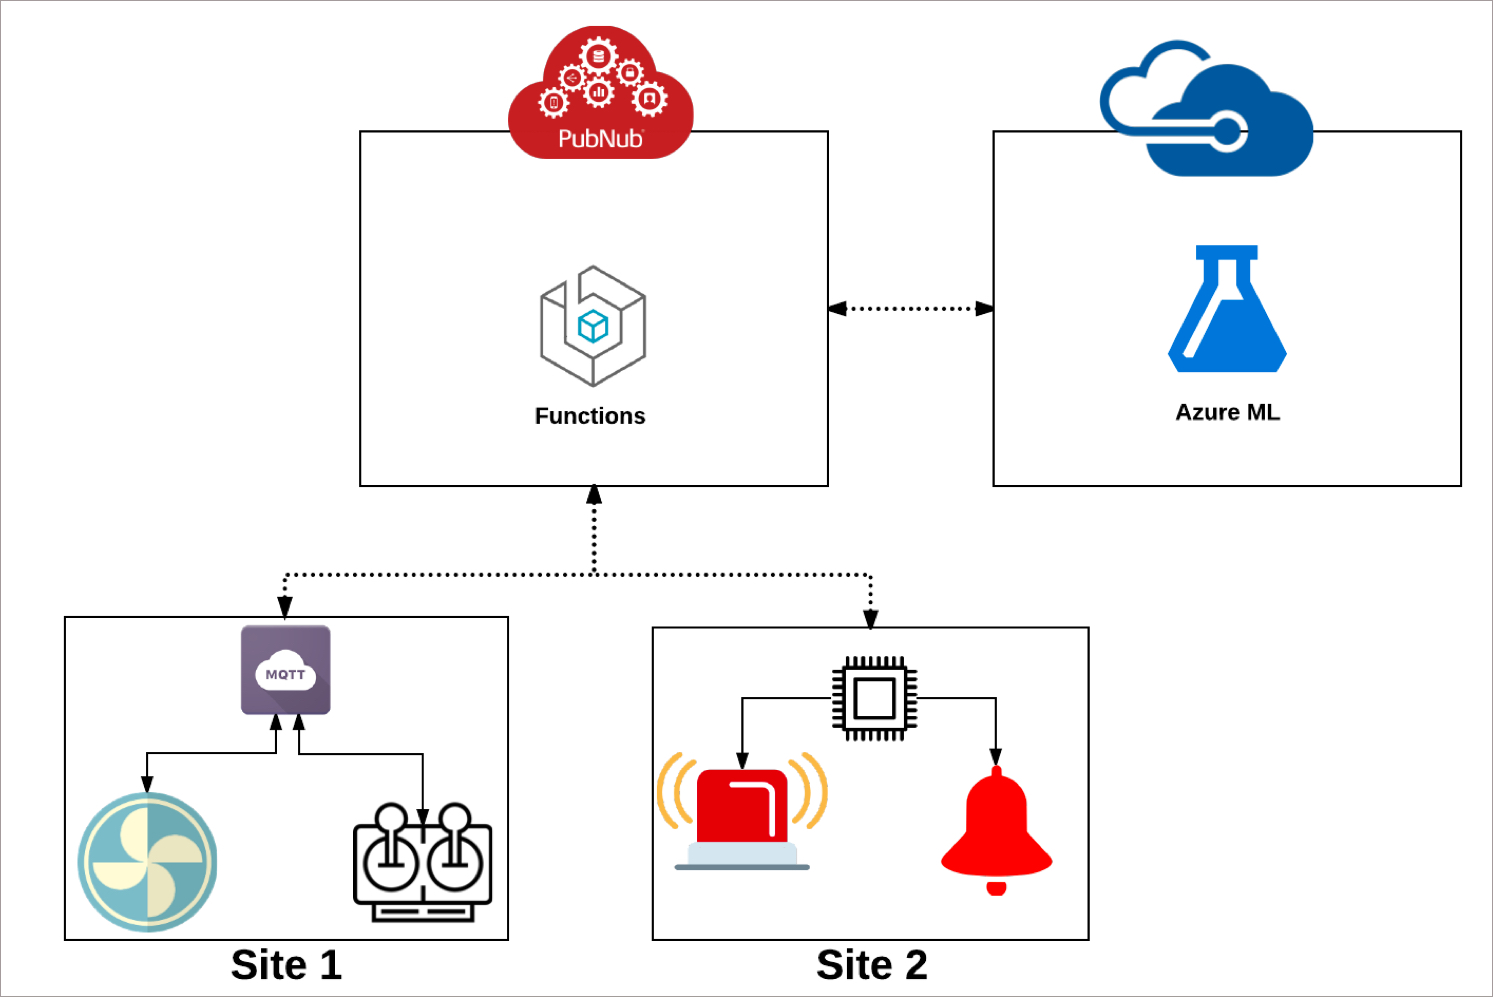 Implement IoT Predictive Maintenance with PubNub and Azure Machine